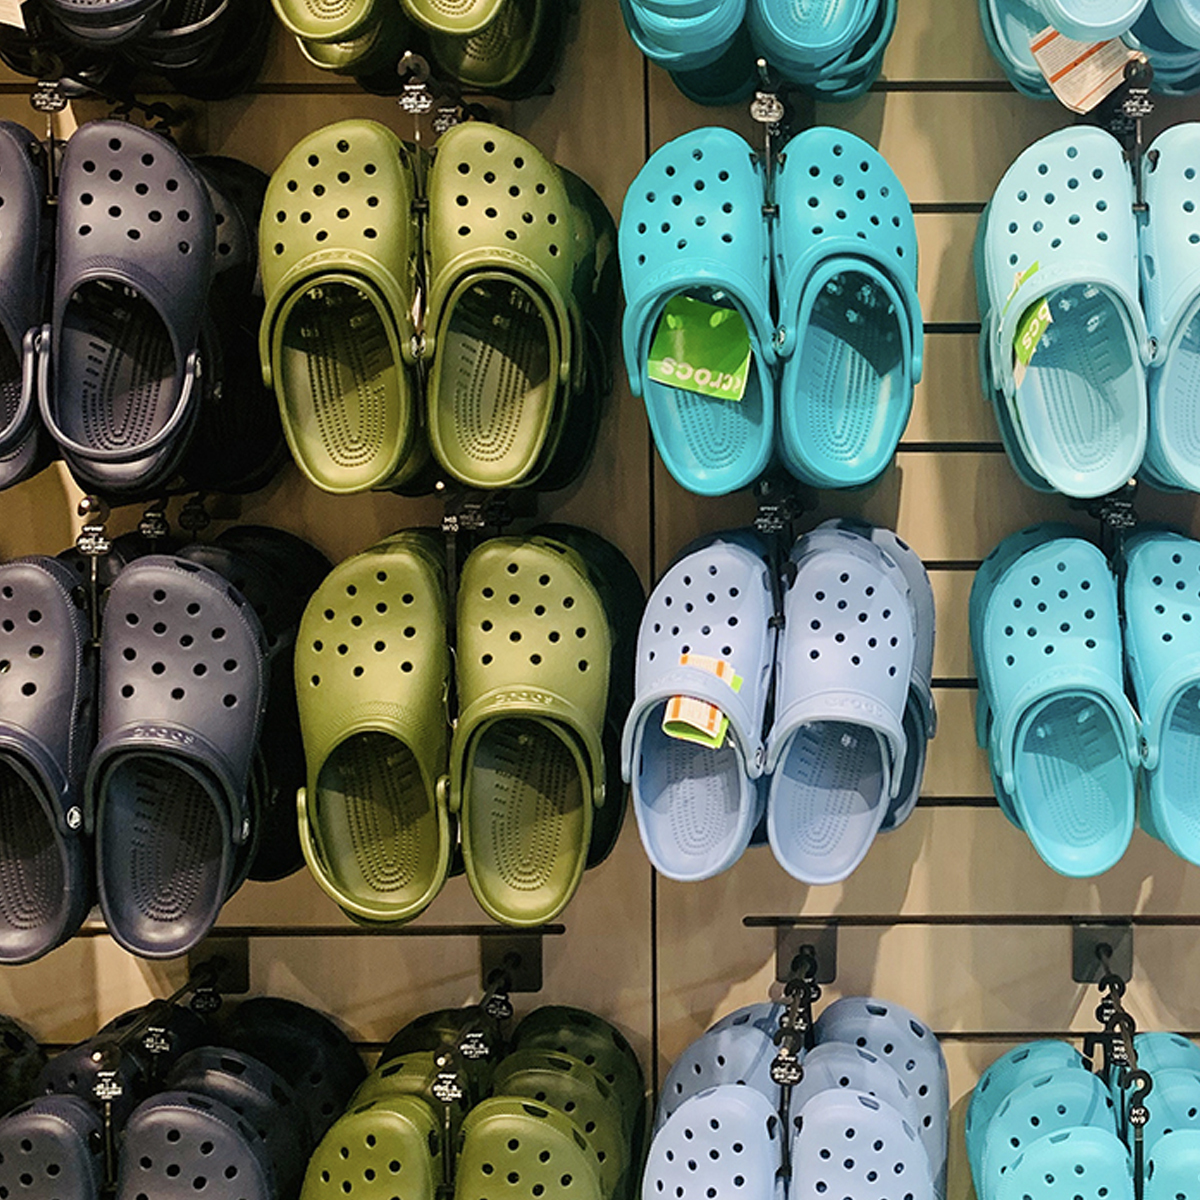 Image of Solutions Crocs case study